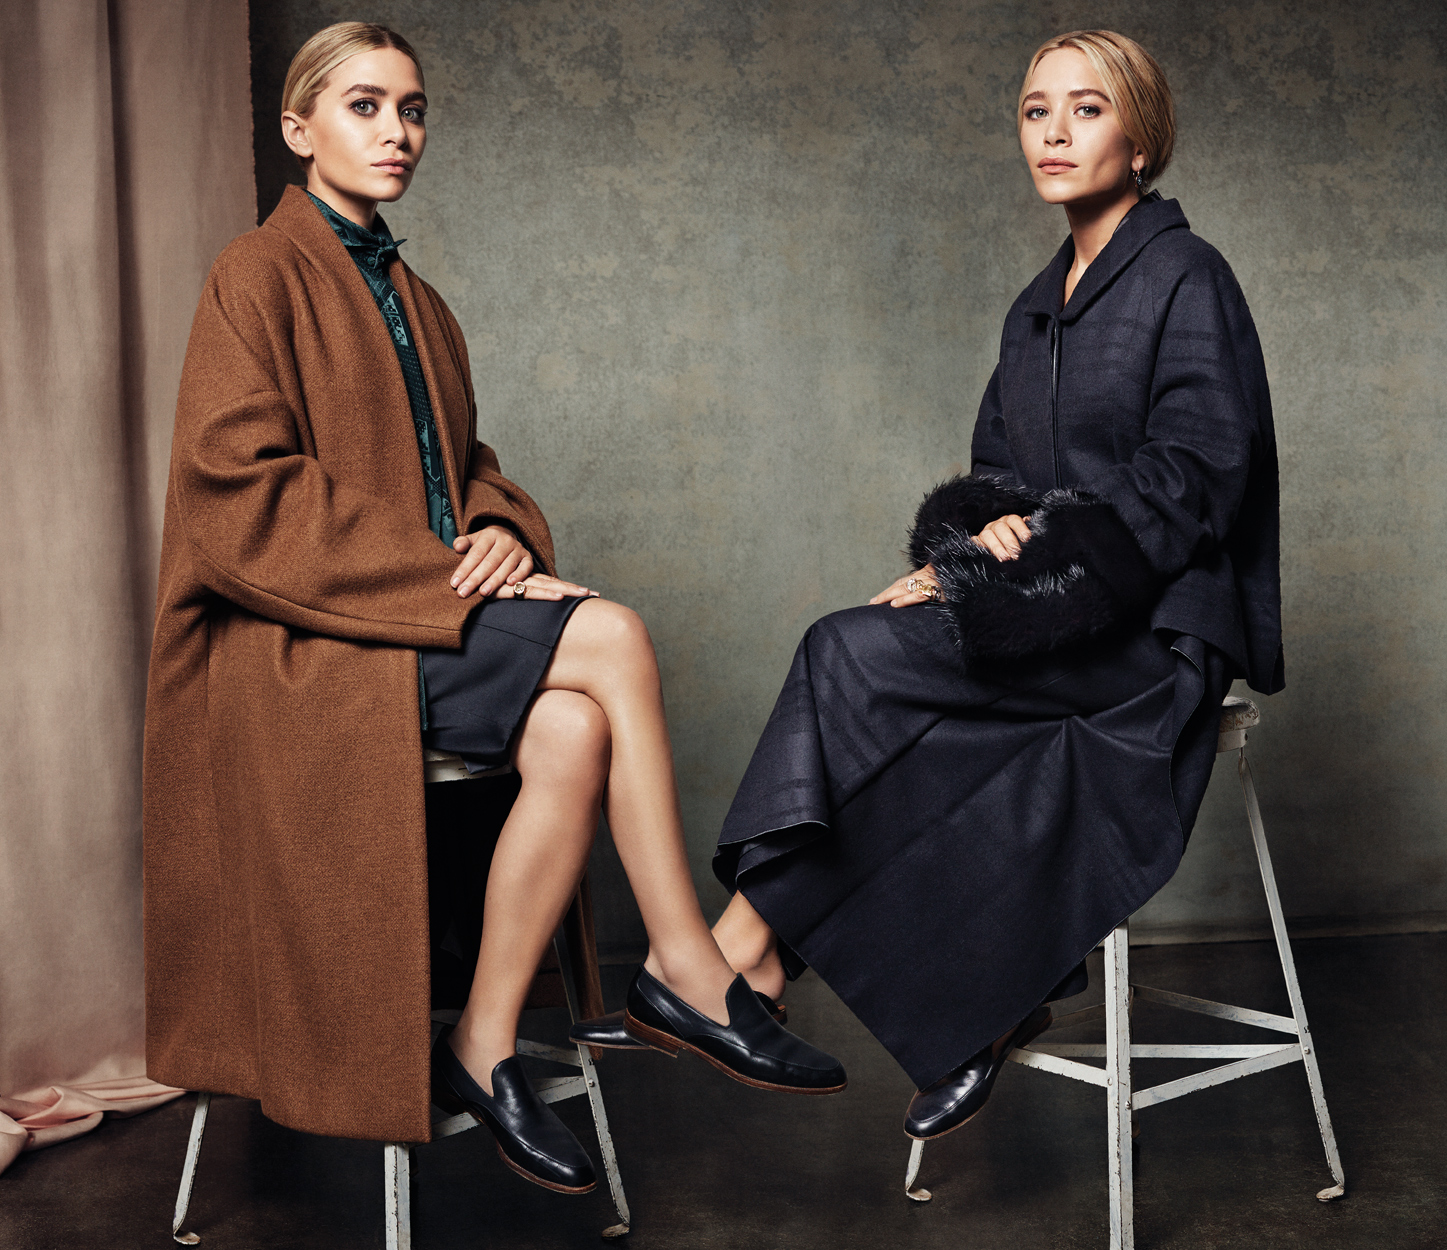 Celebrity Photographer Michael Schwartz: Olsen Twins for Vogue Korea magazine in The Row fashion